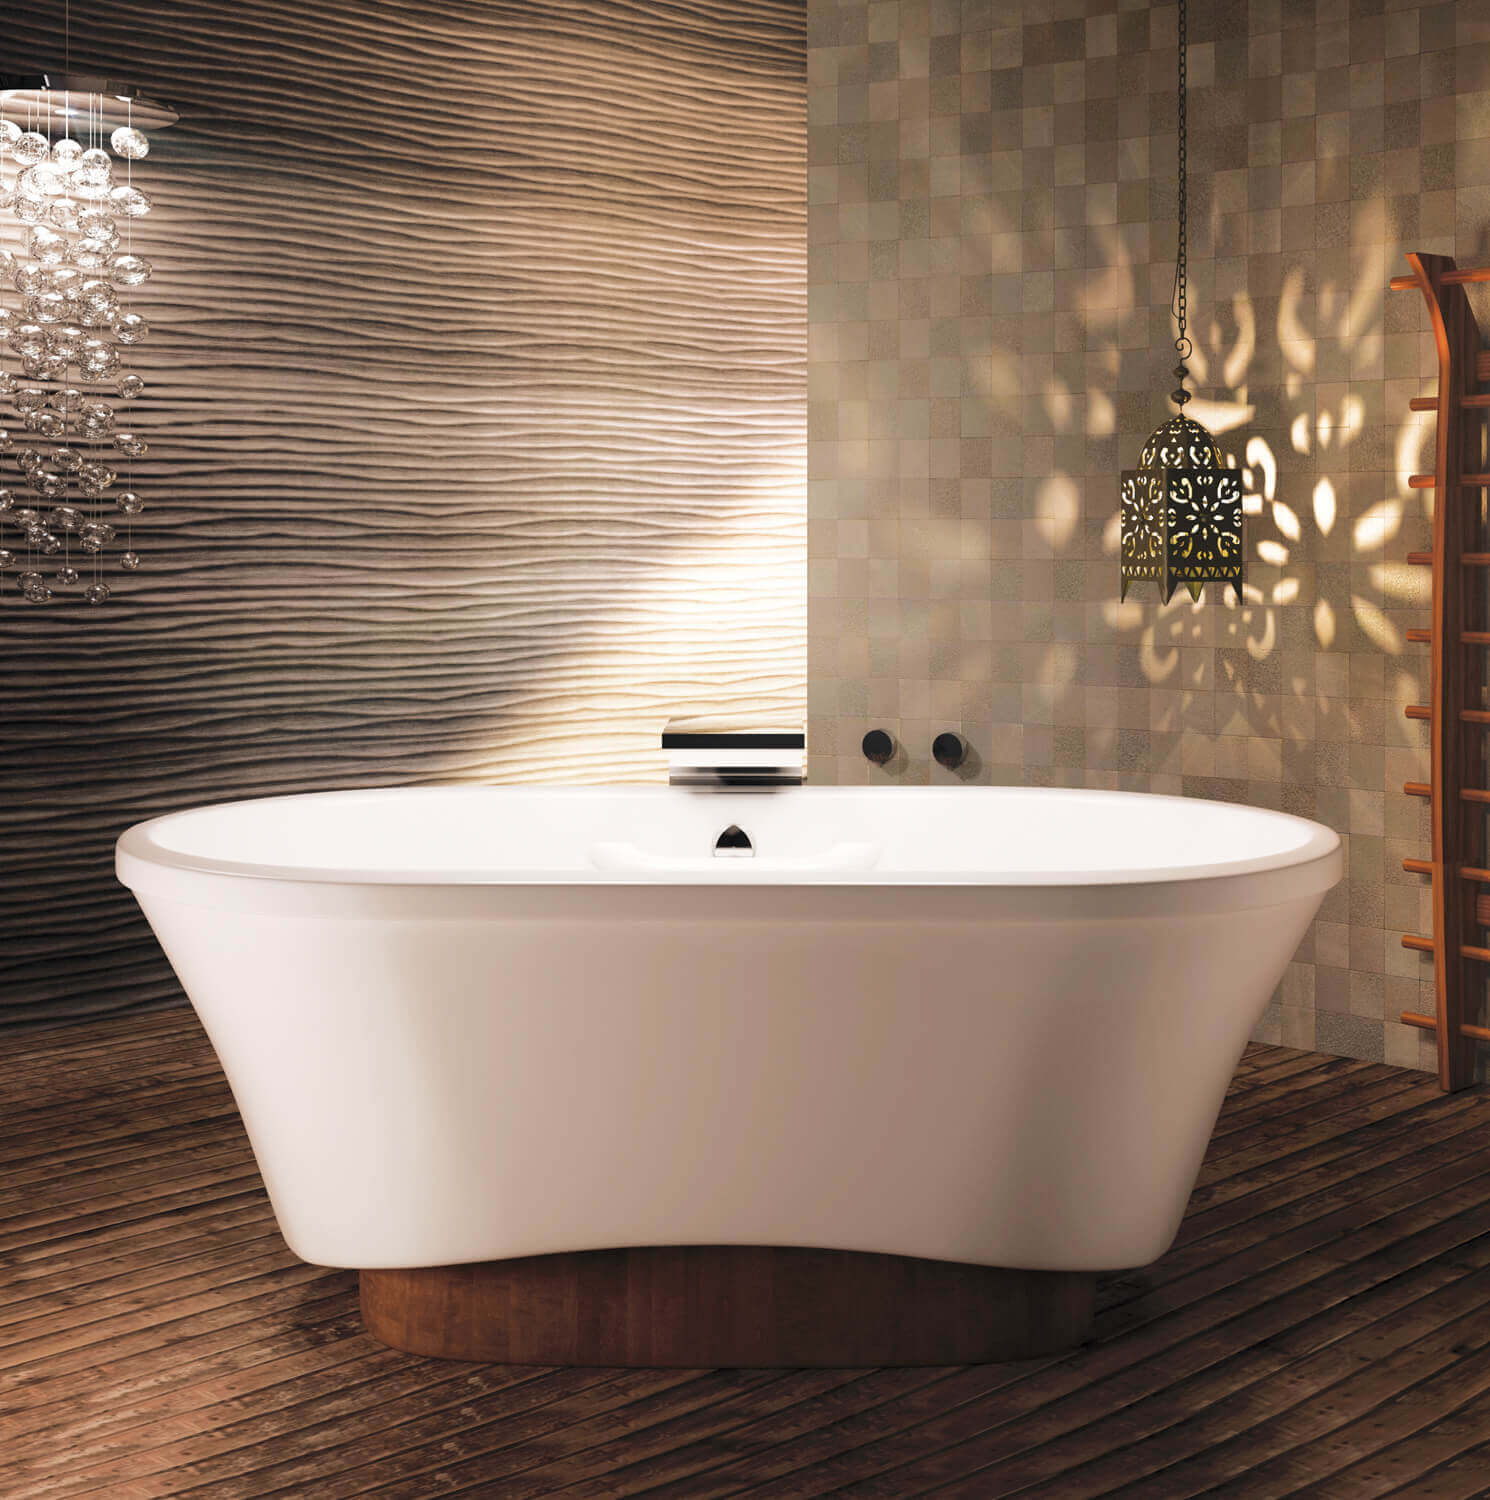 Bainultra Amma® OVAL 7242 freestanding pedestal air jet bathtub for two